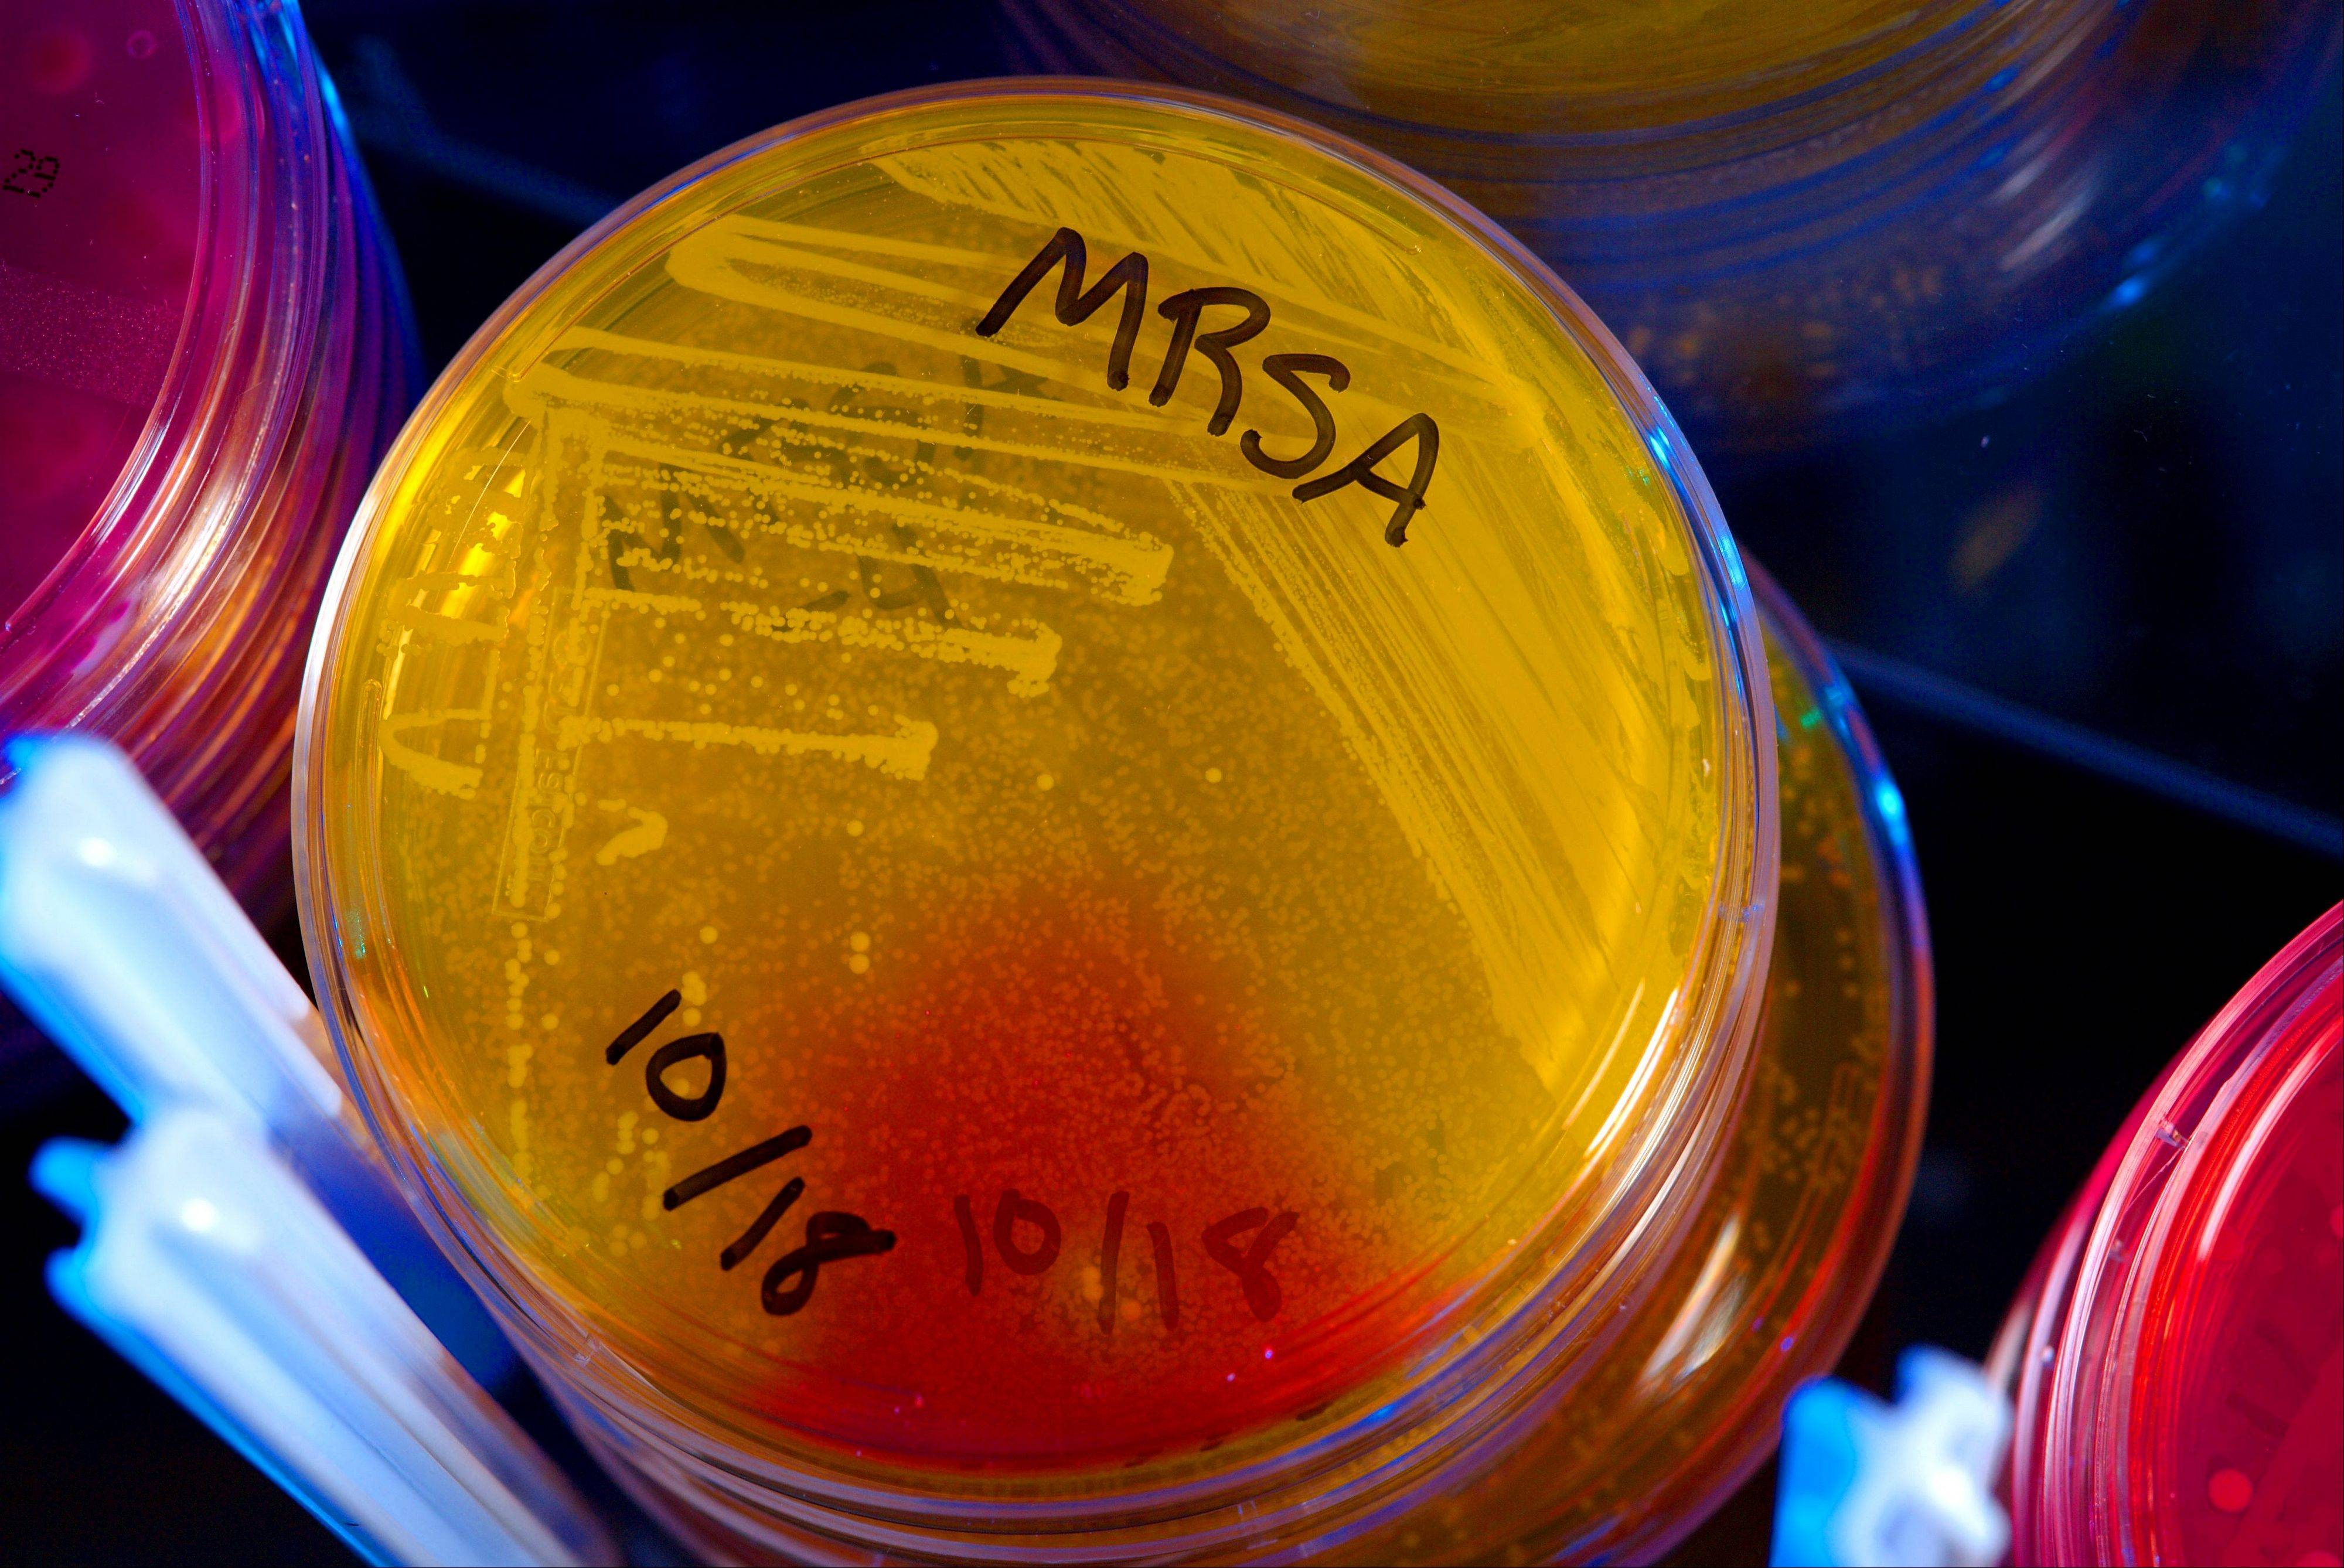 Plates of Methicillin-Resistant Staphylococcus Aureus (MRSA) in CDC's healthcare-associated infections laboratory.